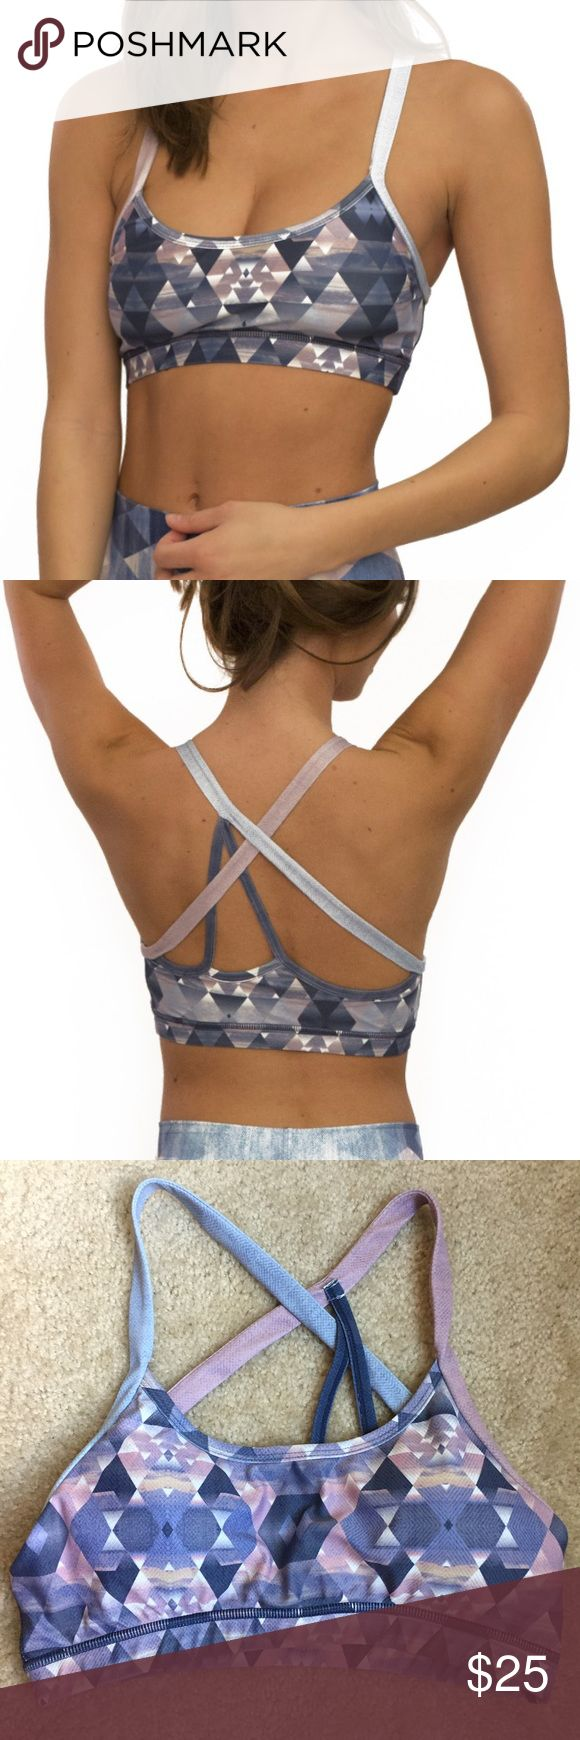 Niyama Sol Diamond Denim Sports Bra Worn and washed only twice - in excellent condition! Incredibly cute strappy back detail. Sports bra includes removable pads. Niyama Sol Tops Crop Tops